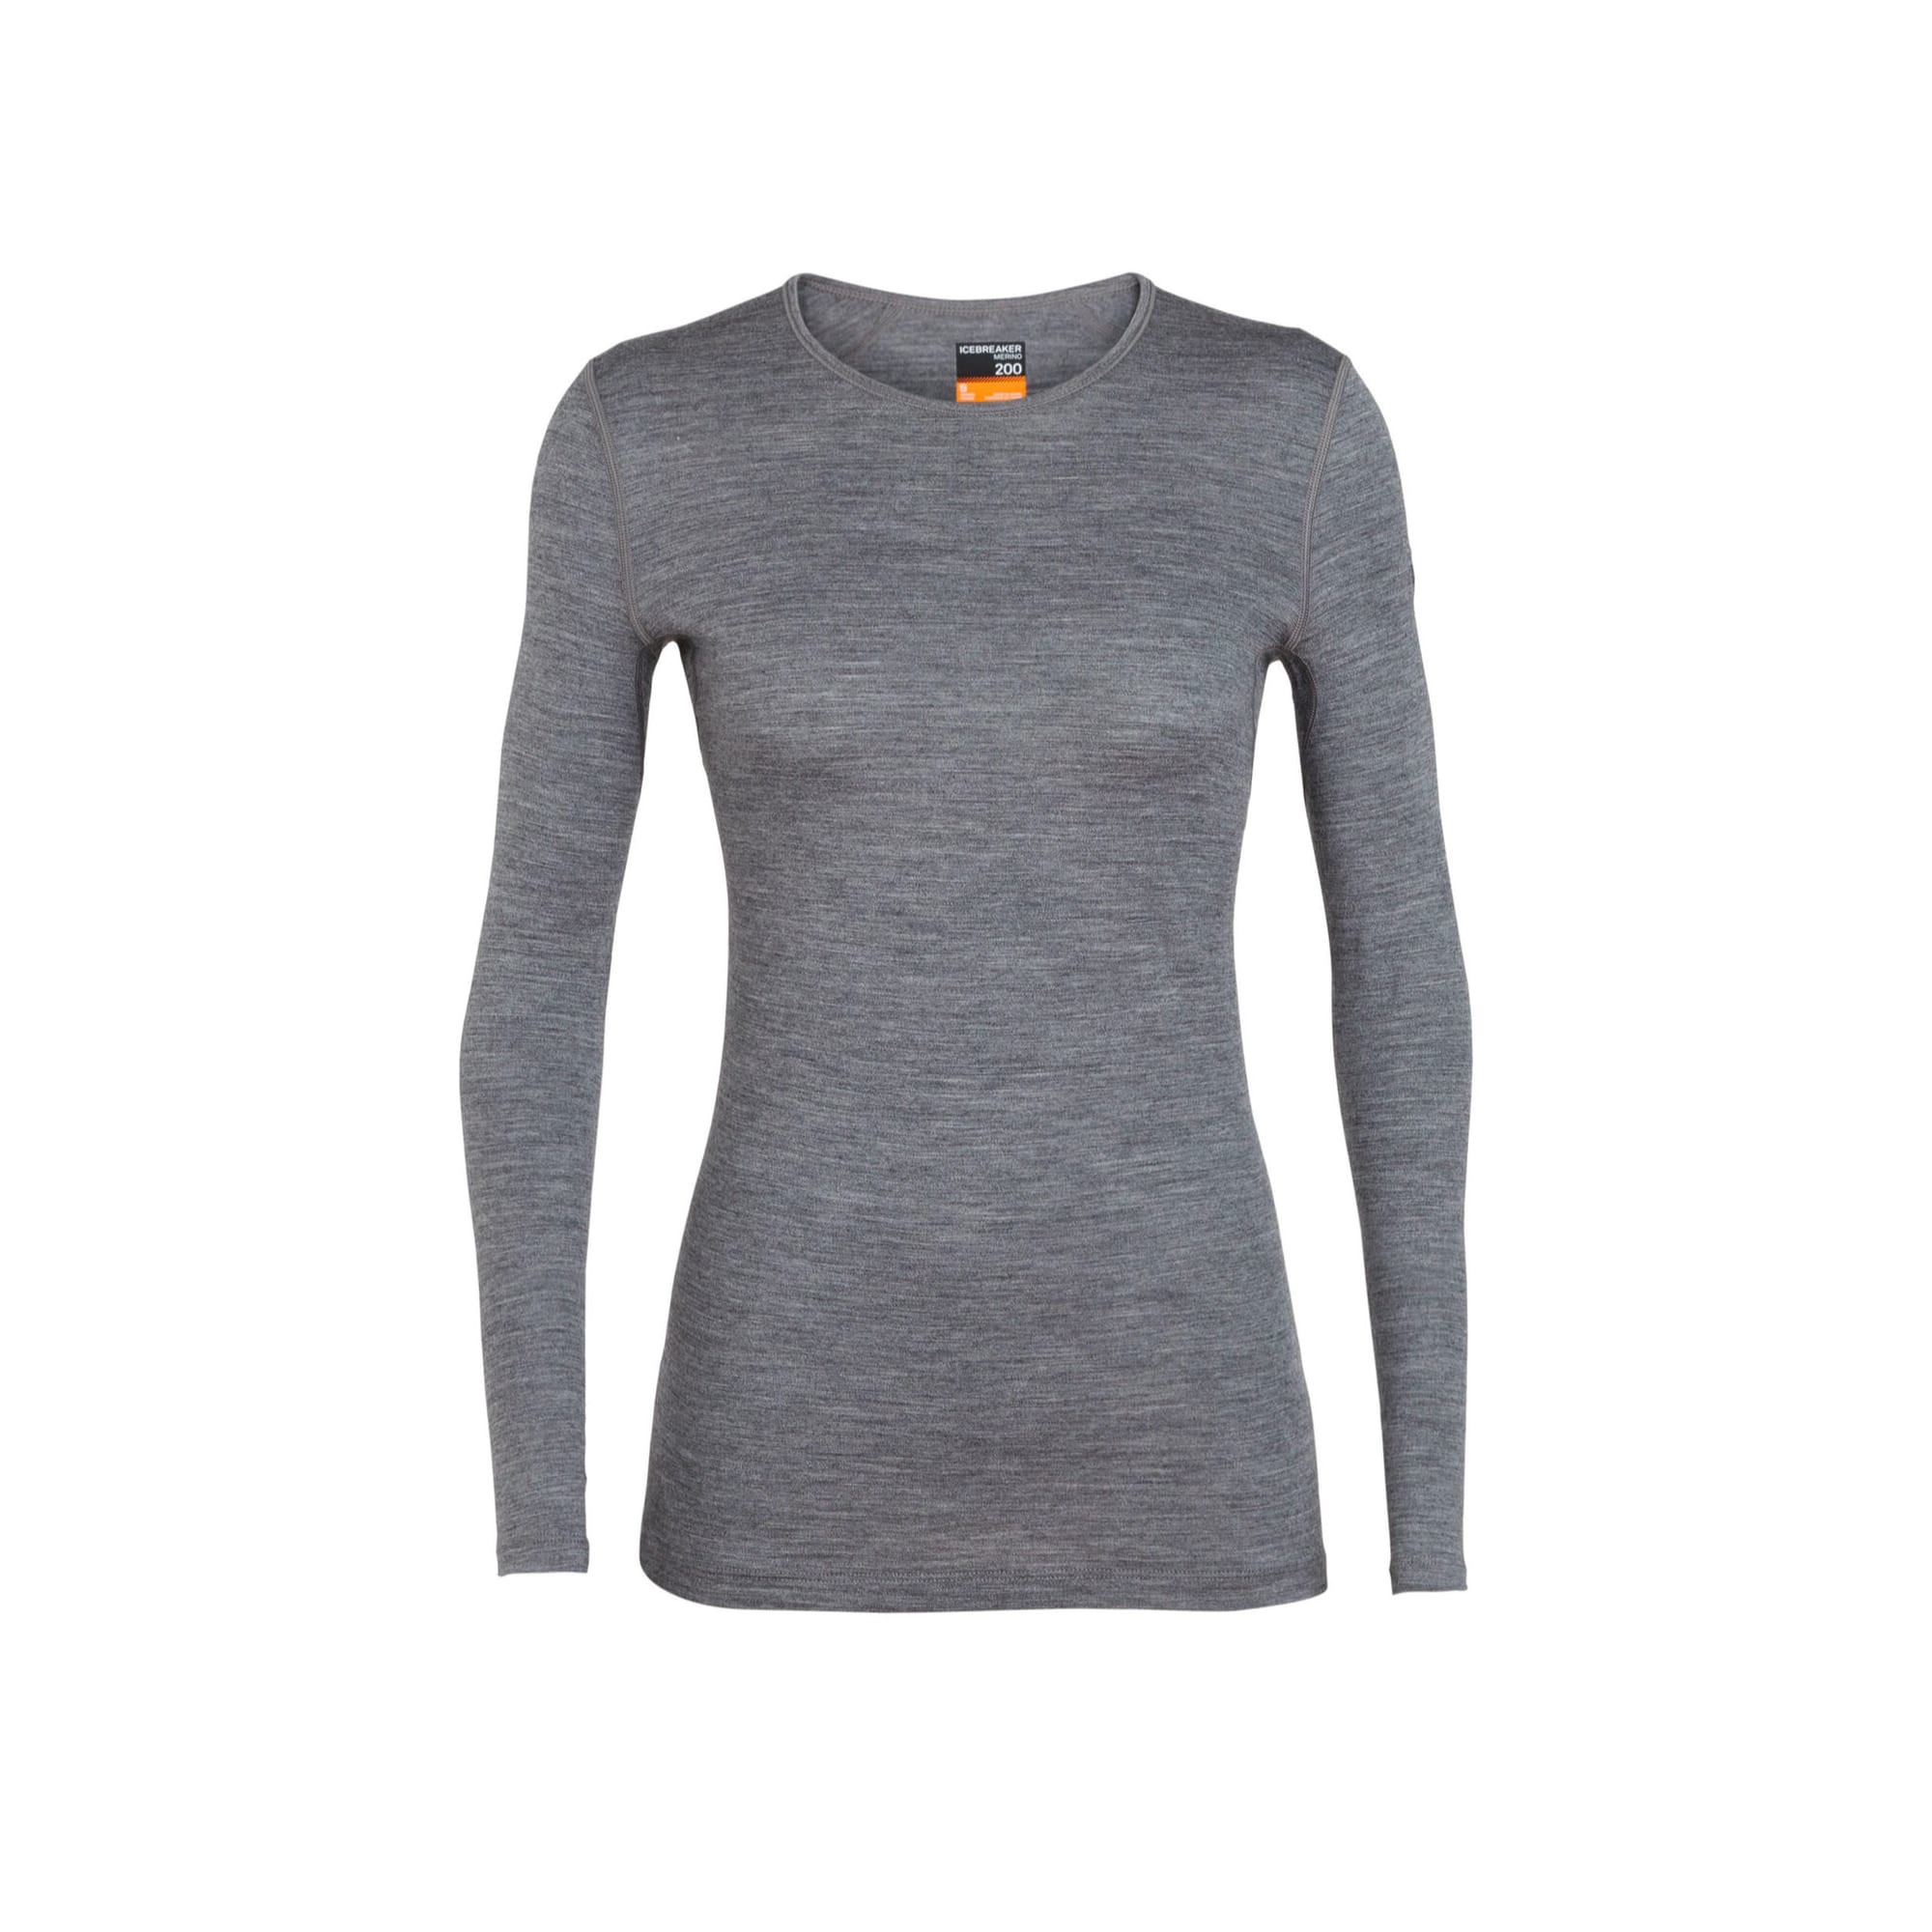 Women's 200 Oasis Long Sleeve Crewe-1